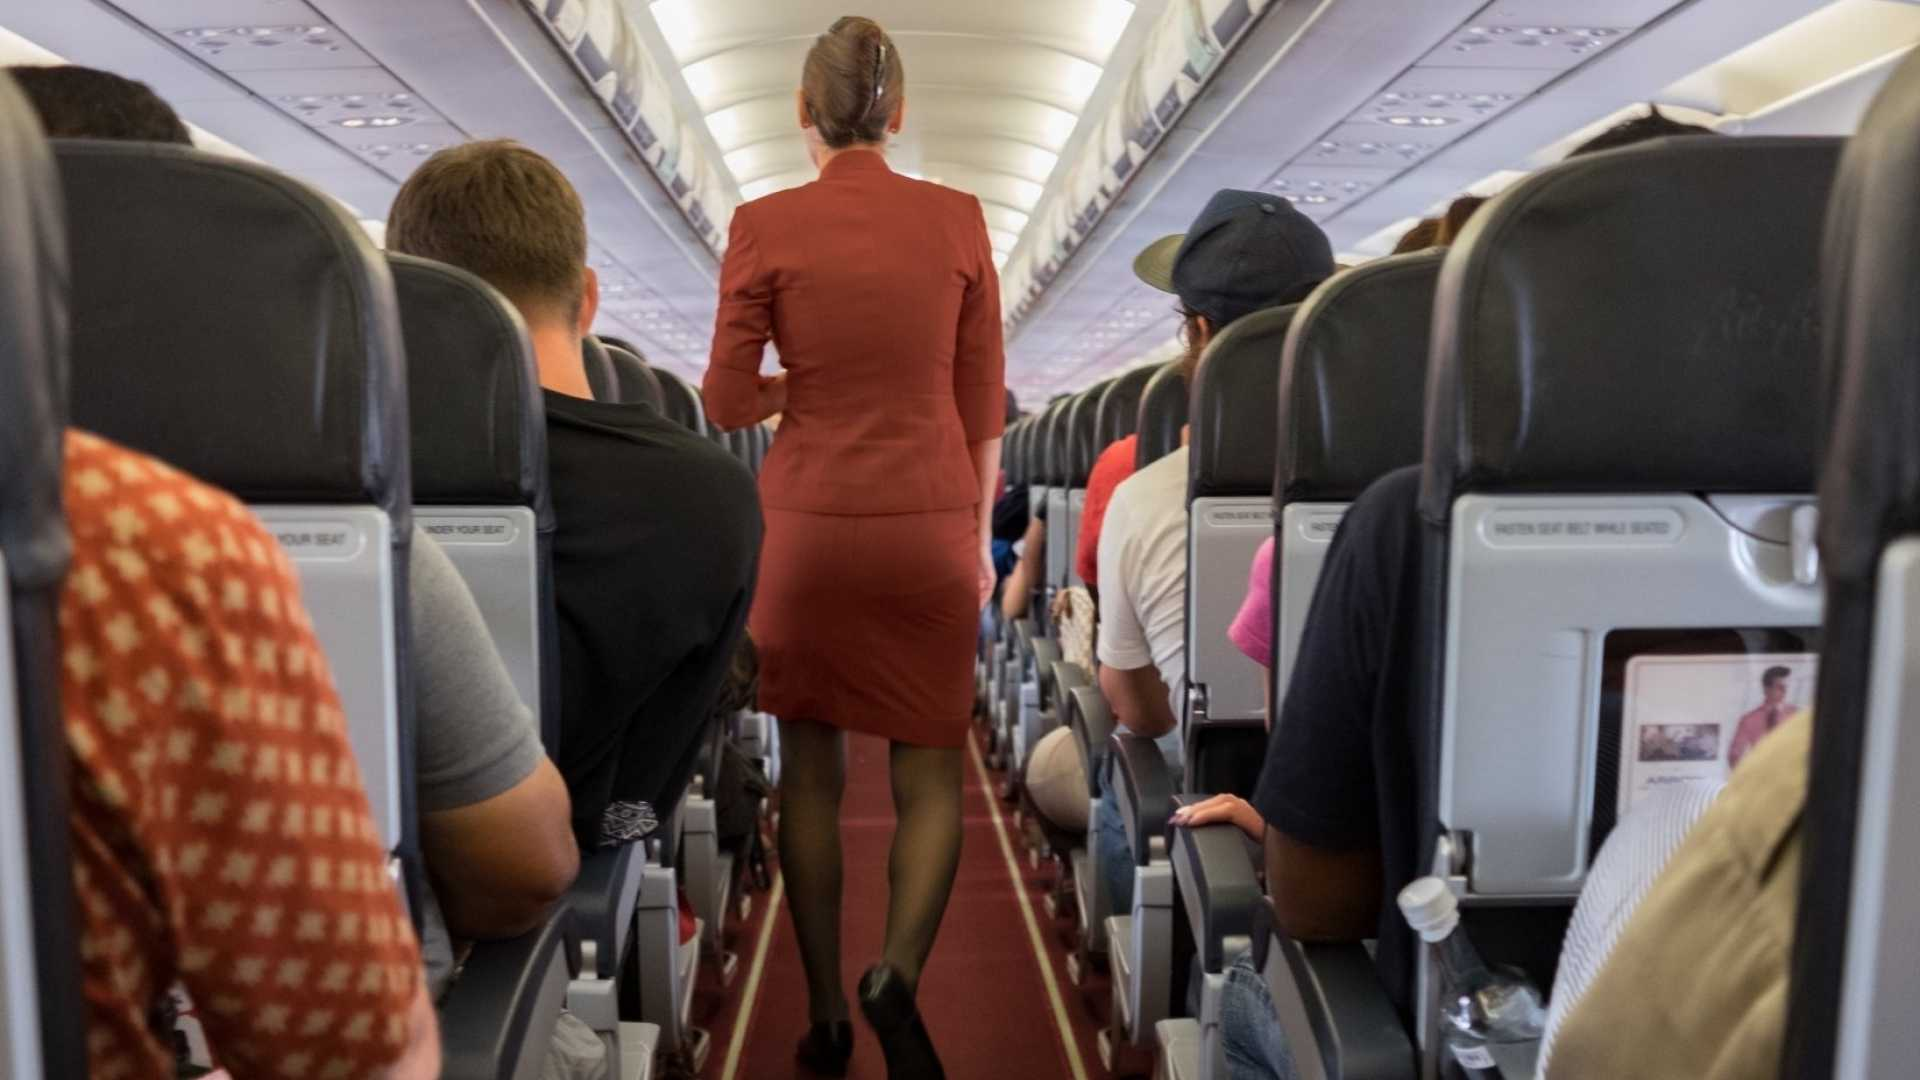 When I Was a Flight Attendant, I Used These 4 Steps to Handle Any Uncomfortable Customer Service Issue